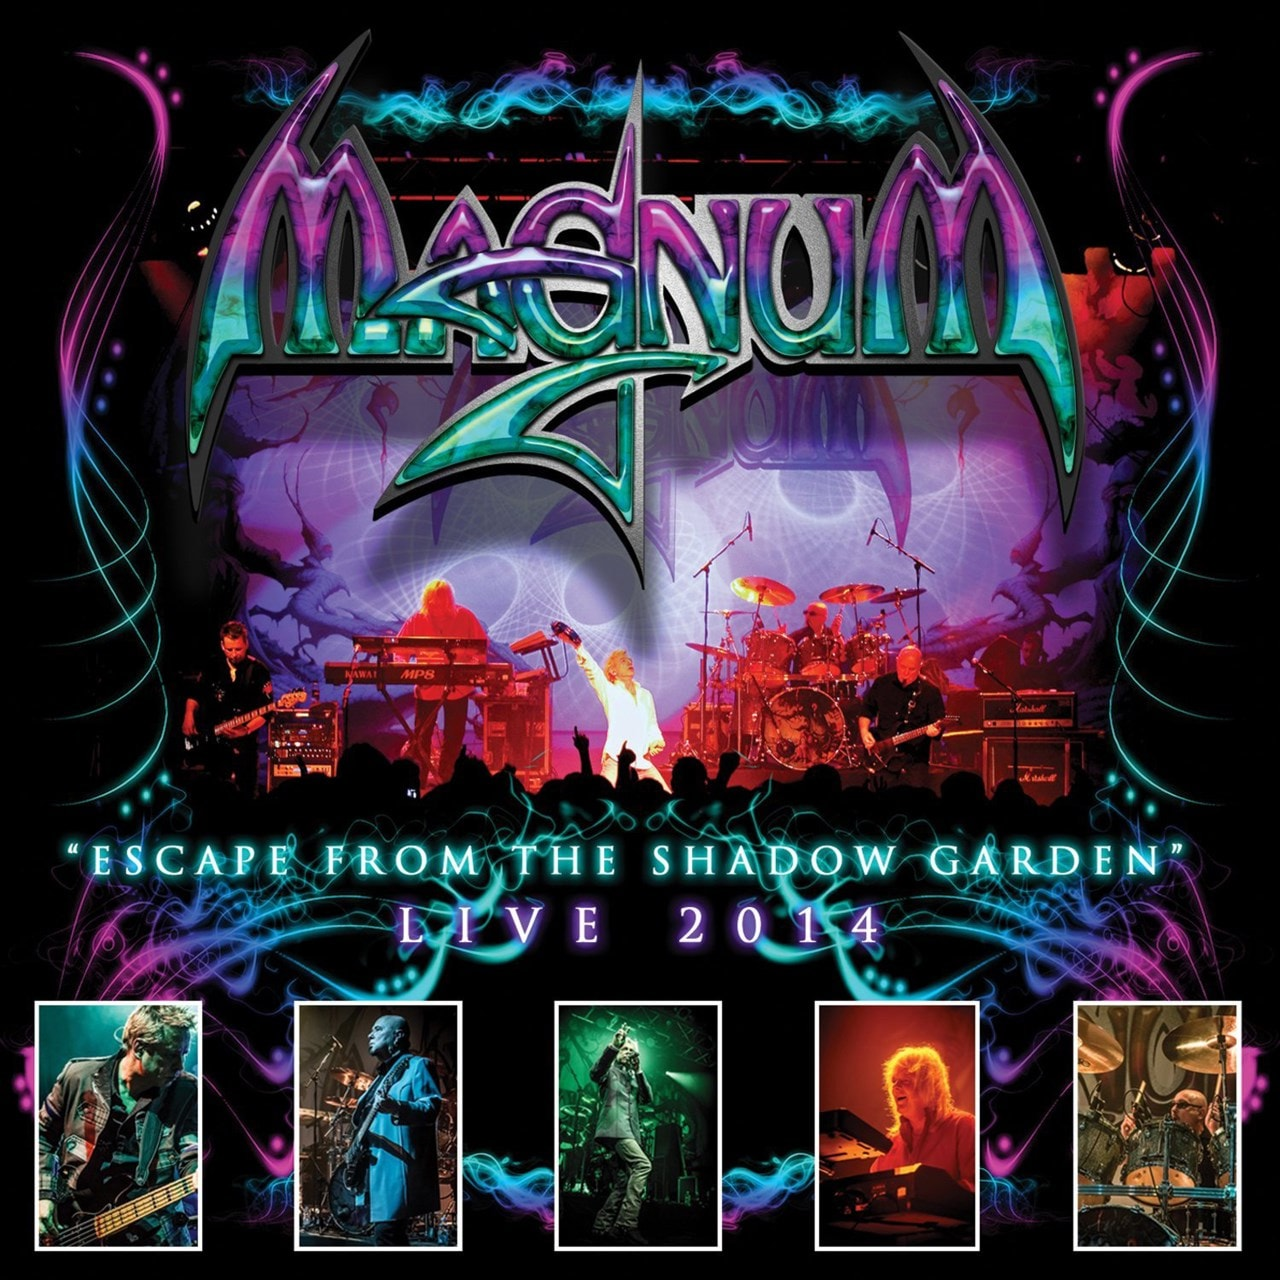 Escape from the Shadow Garden: Live 2014 - 1